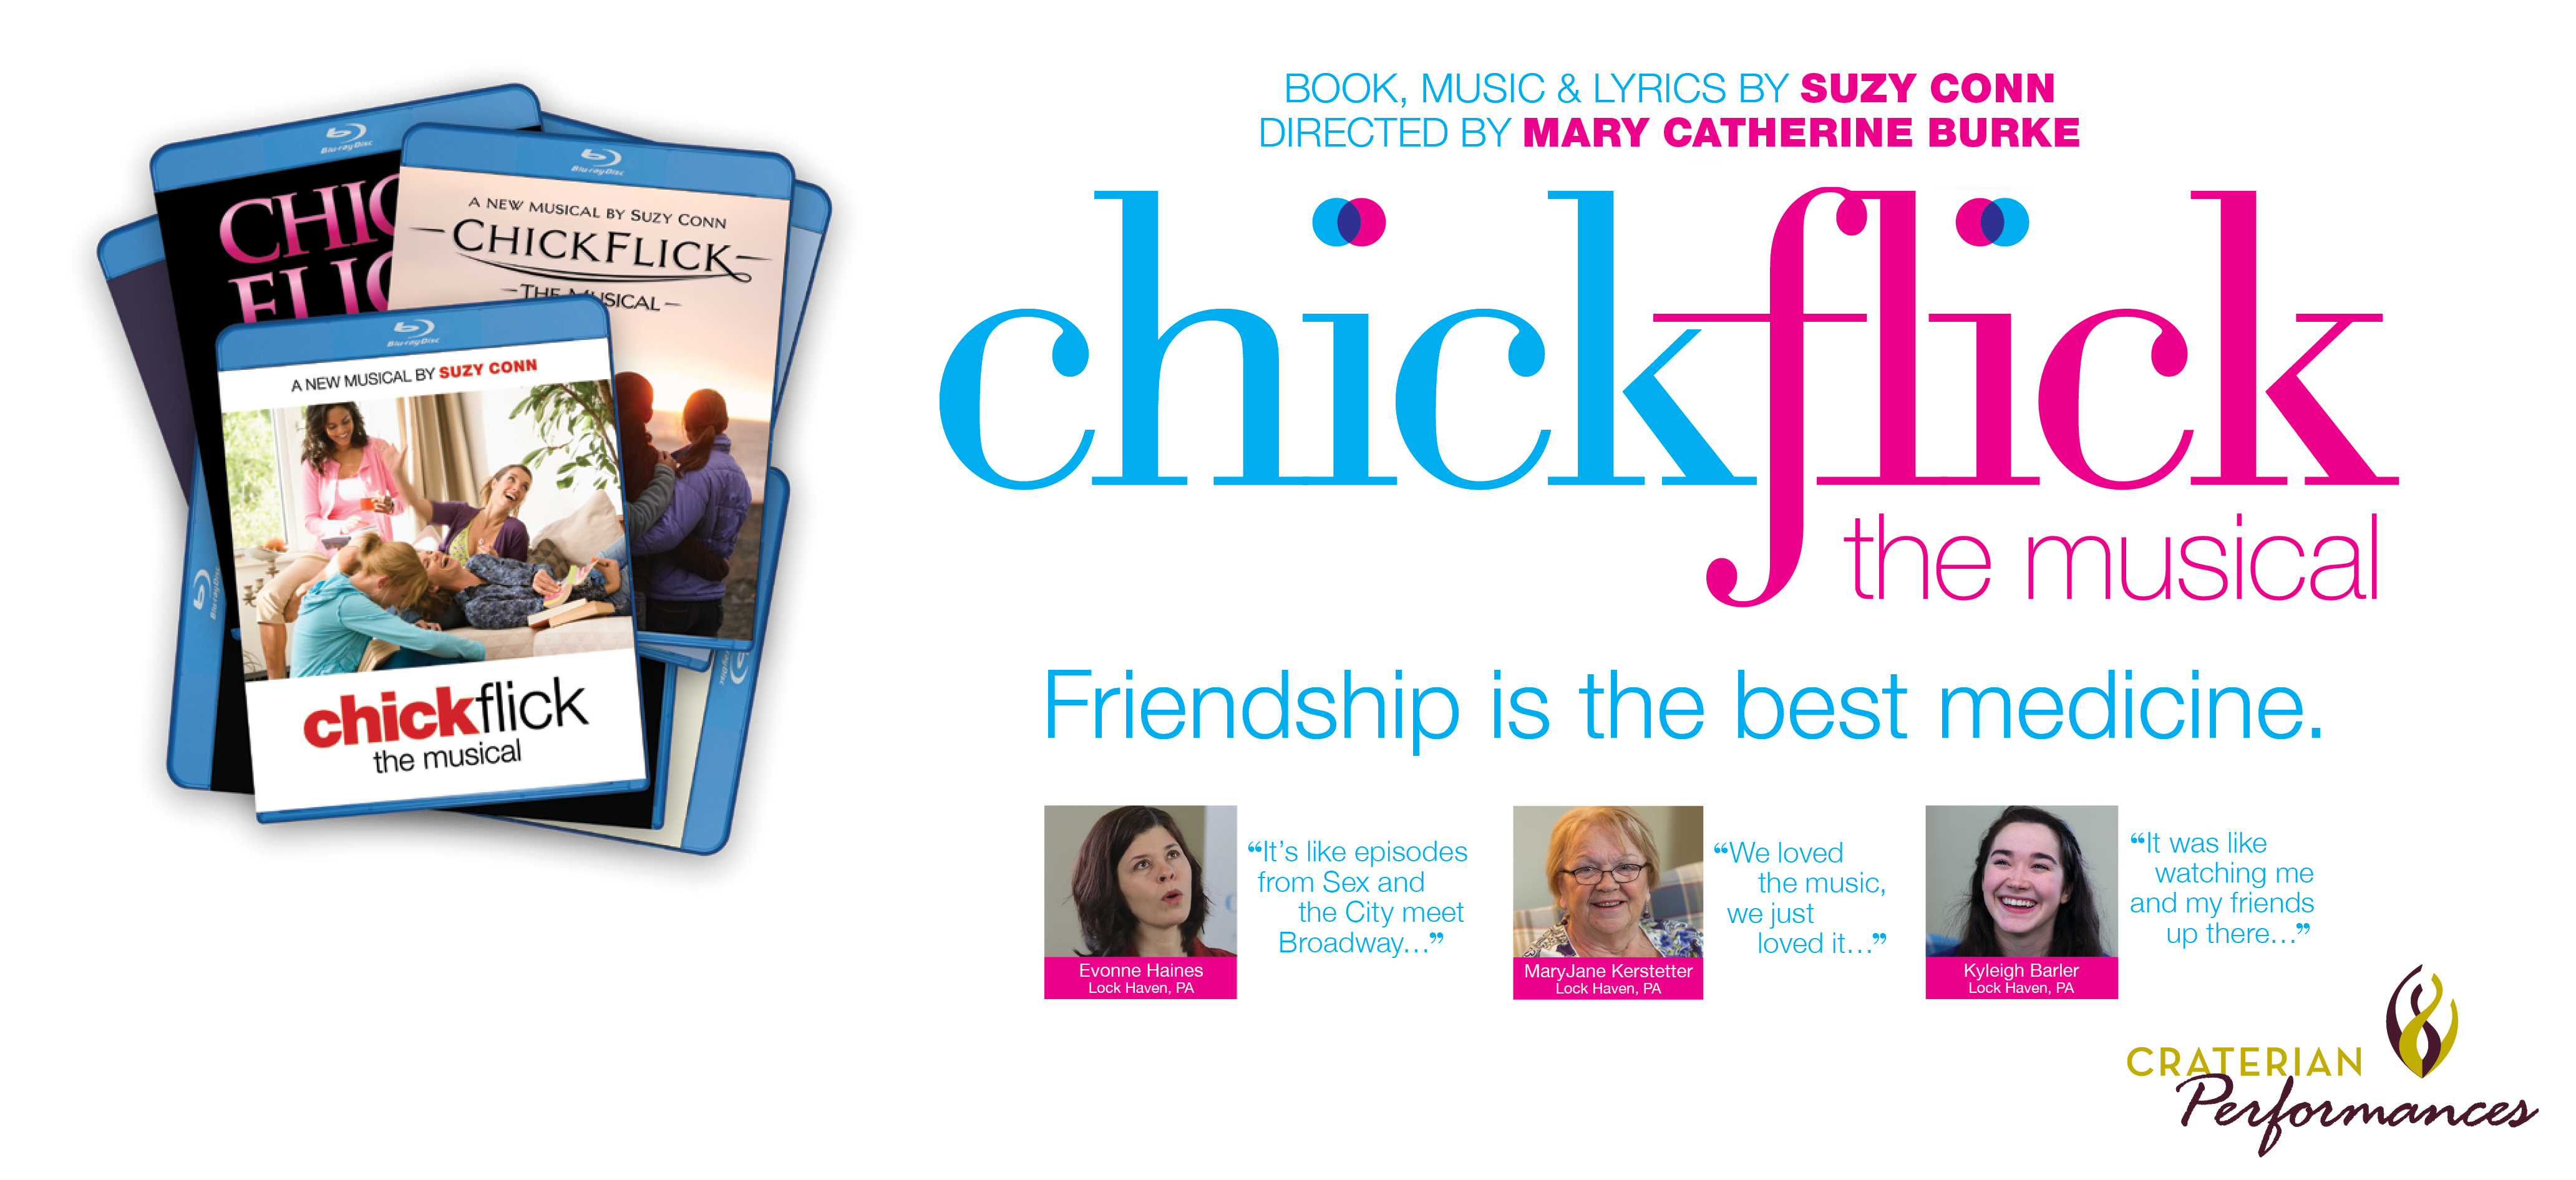 Chick Flick, The Musical